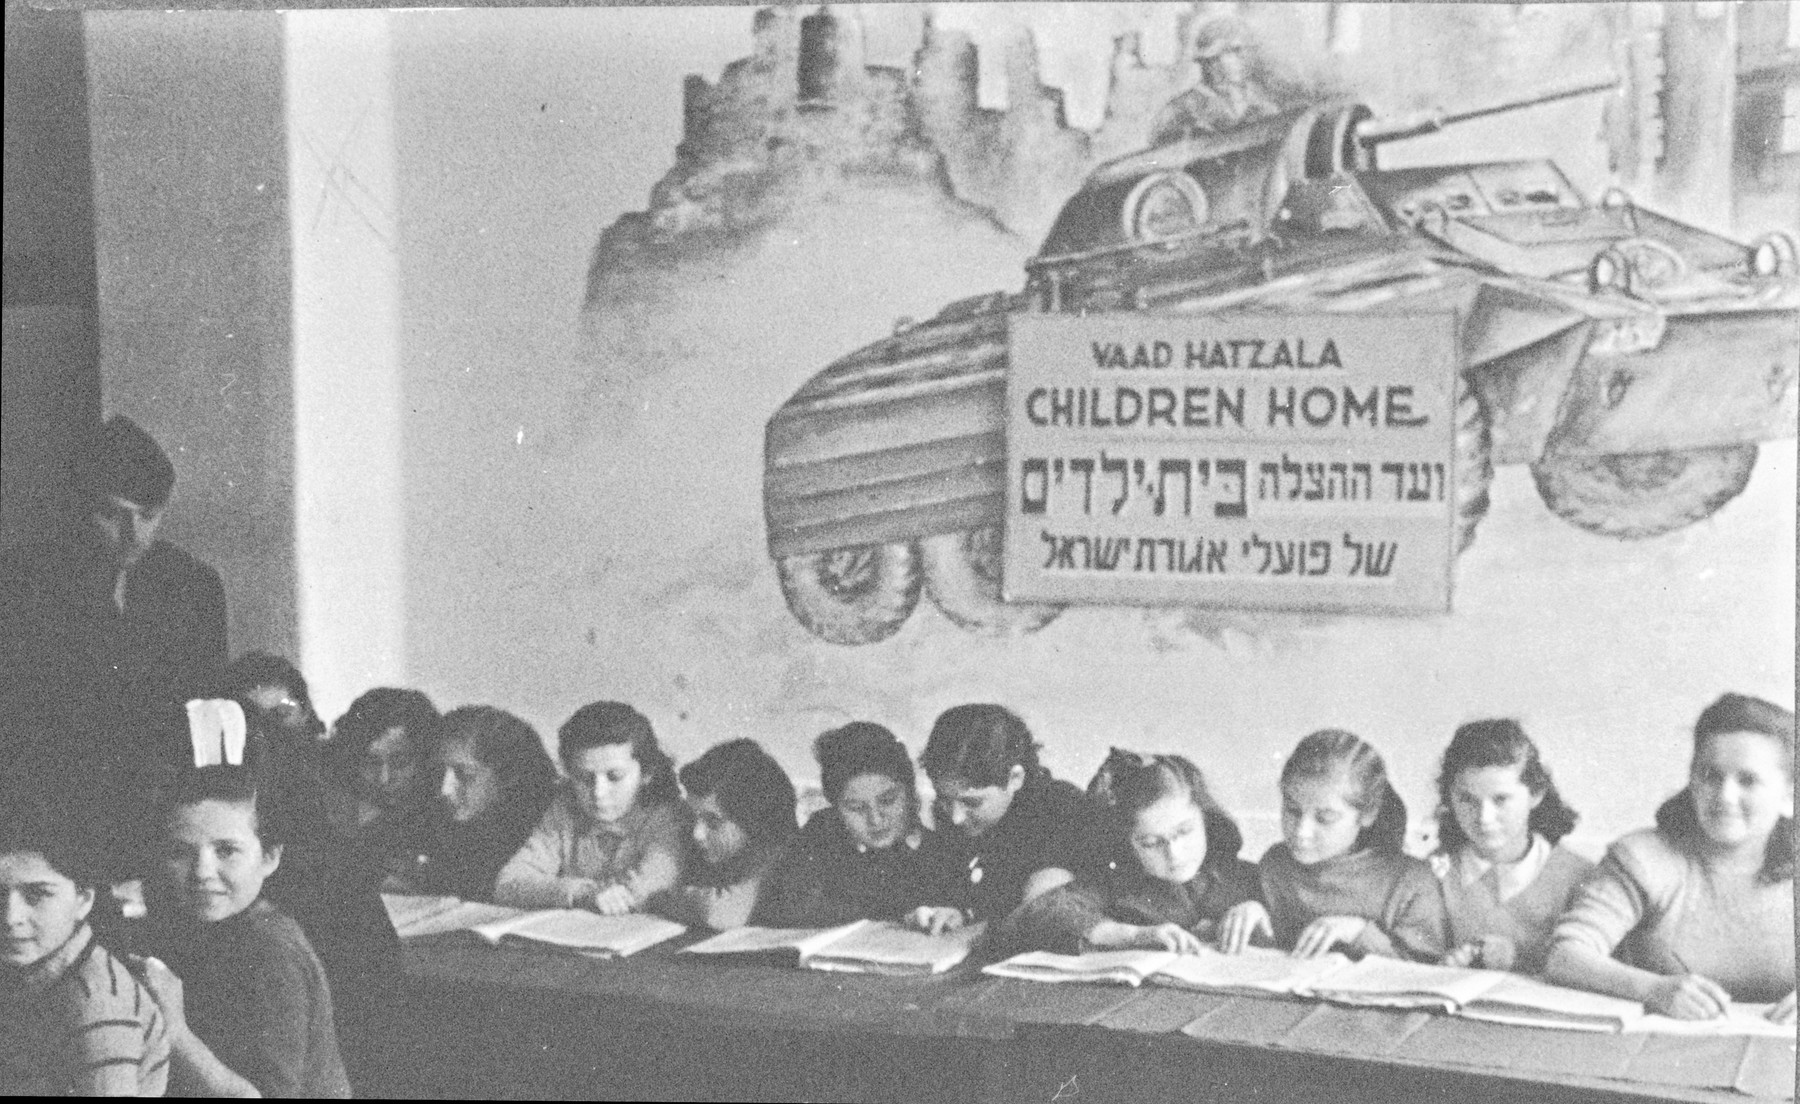 School girls study a religious text in the Poalei Agudat Yisrael children's home in Ulm run by the Vaad Hatzala.